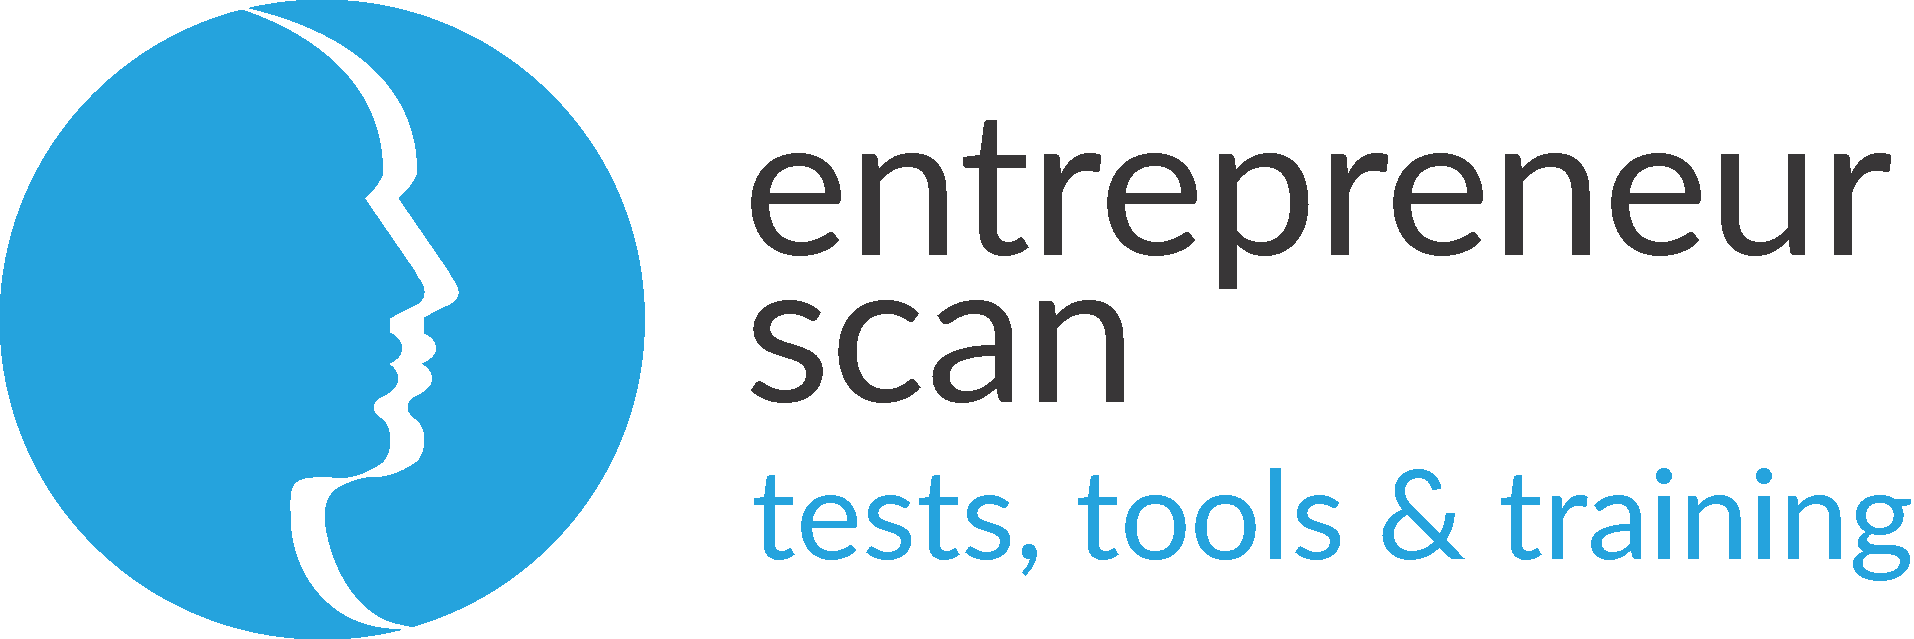 Entrepreneur_Scan_Test_Tools_Training_Logo